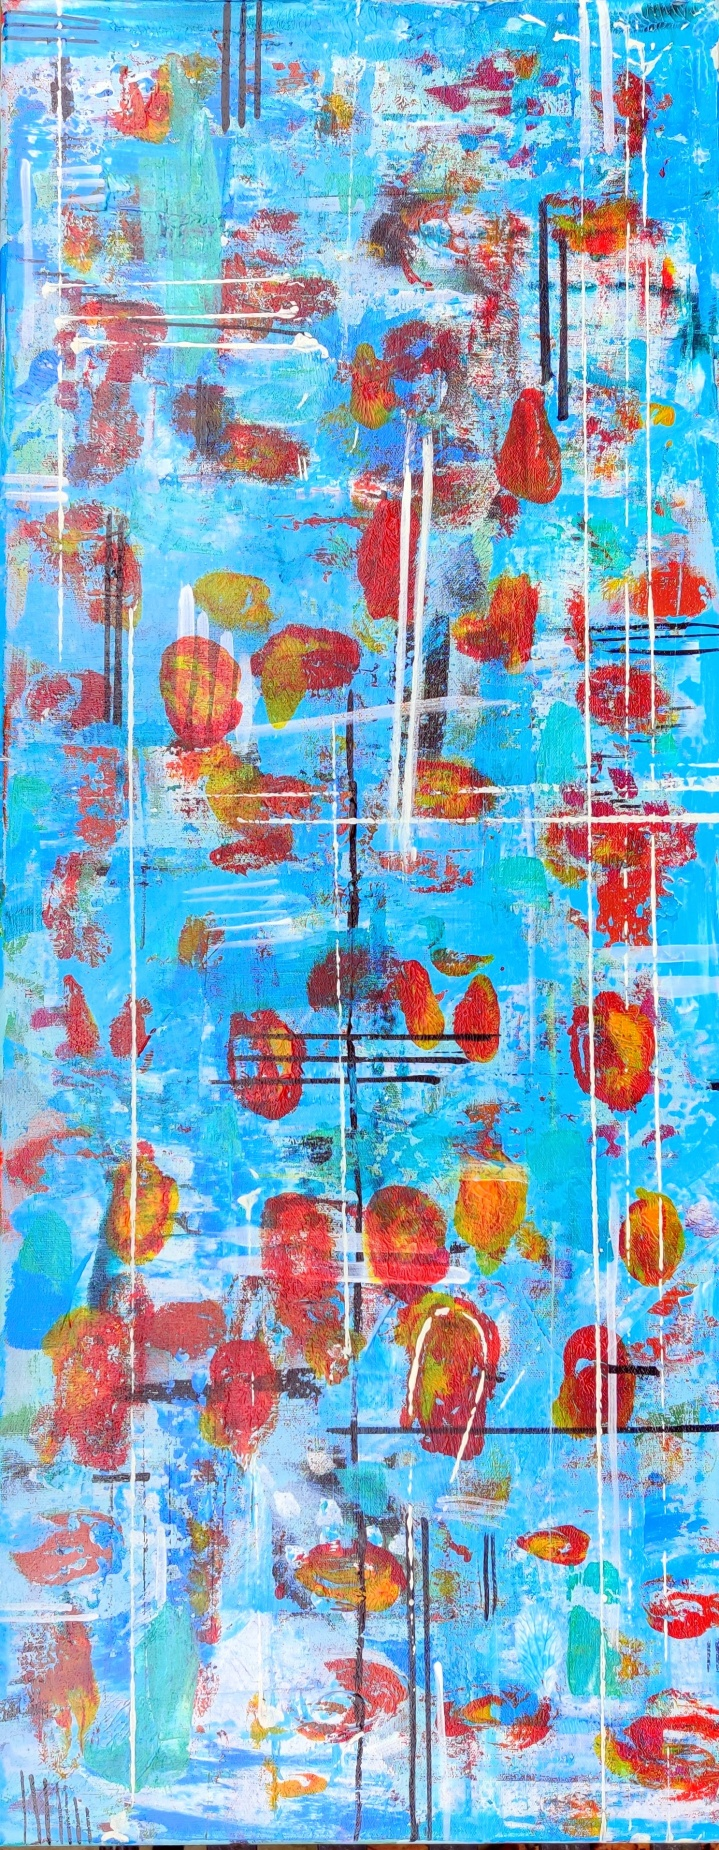 1395 Fields of Flowers Red 1000x400mm acrylic 350gbp